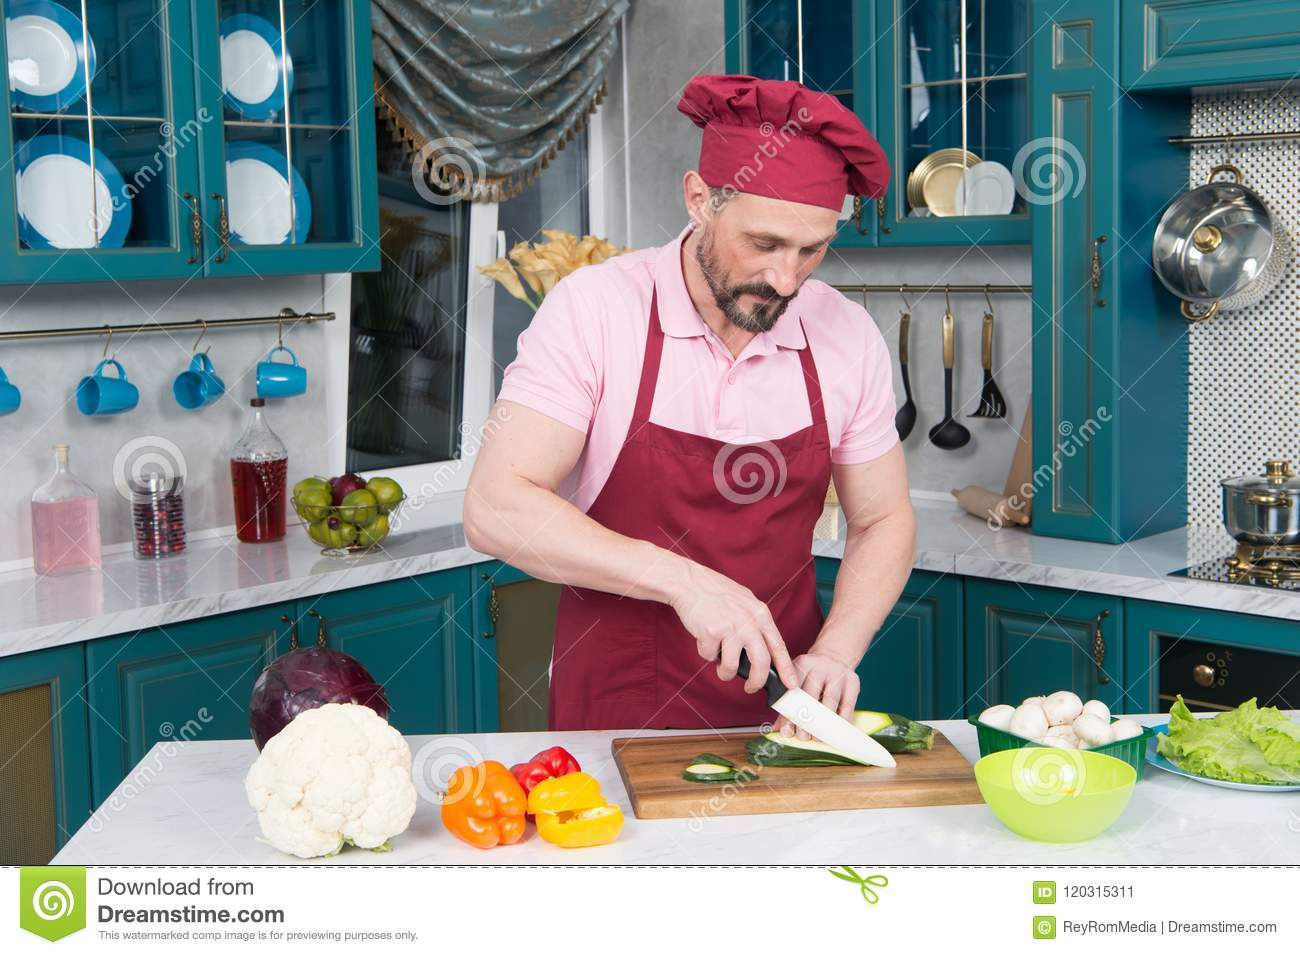 Man in uniform apron cutting zucchini on slice by knife. Orange and red paprika on table prepared for cutting after green zucchini